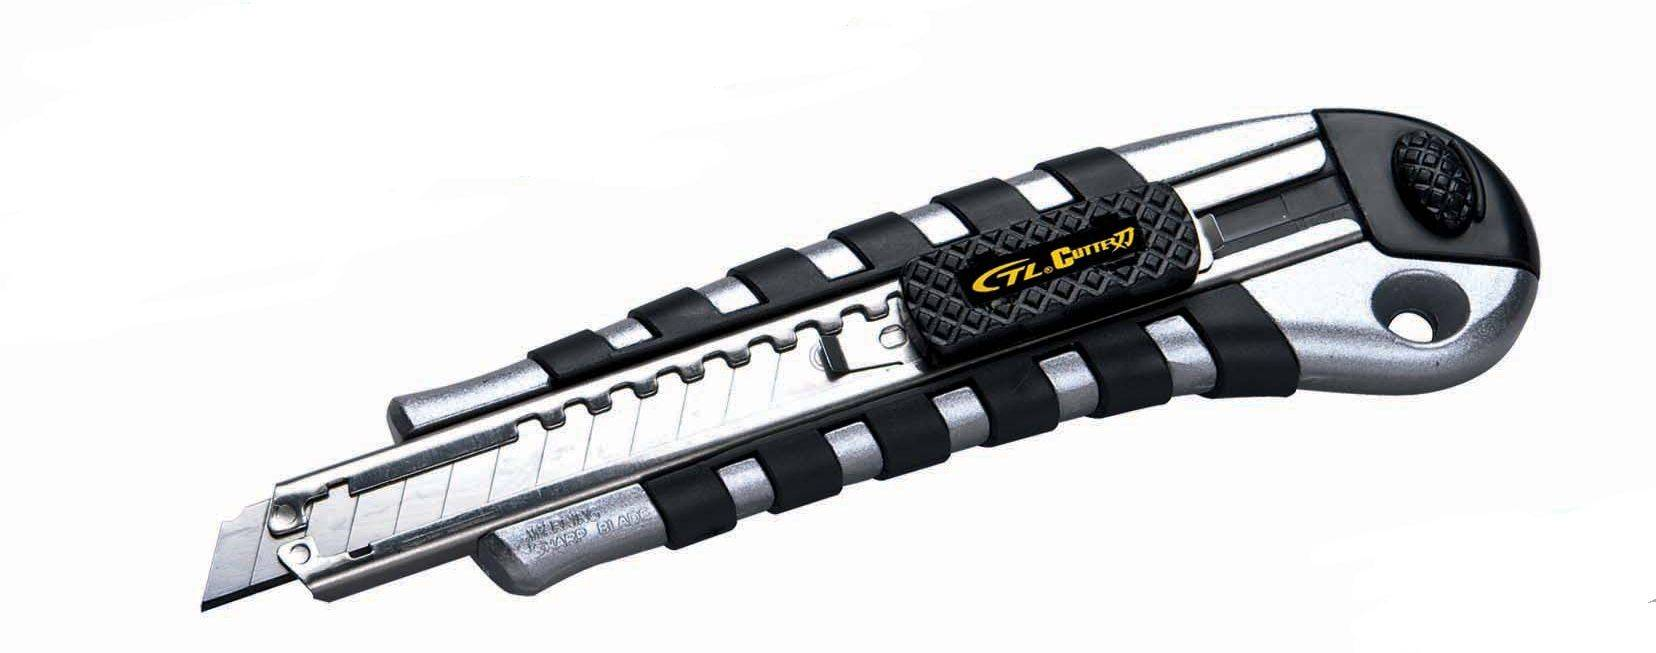 Auto Reloading Blade Knife